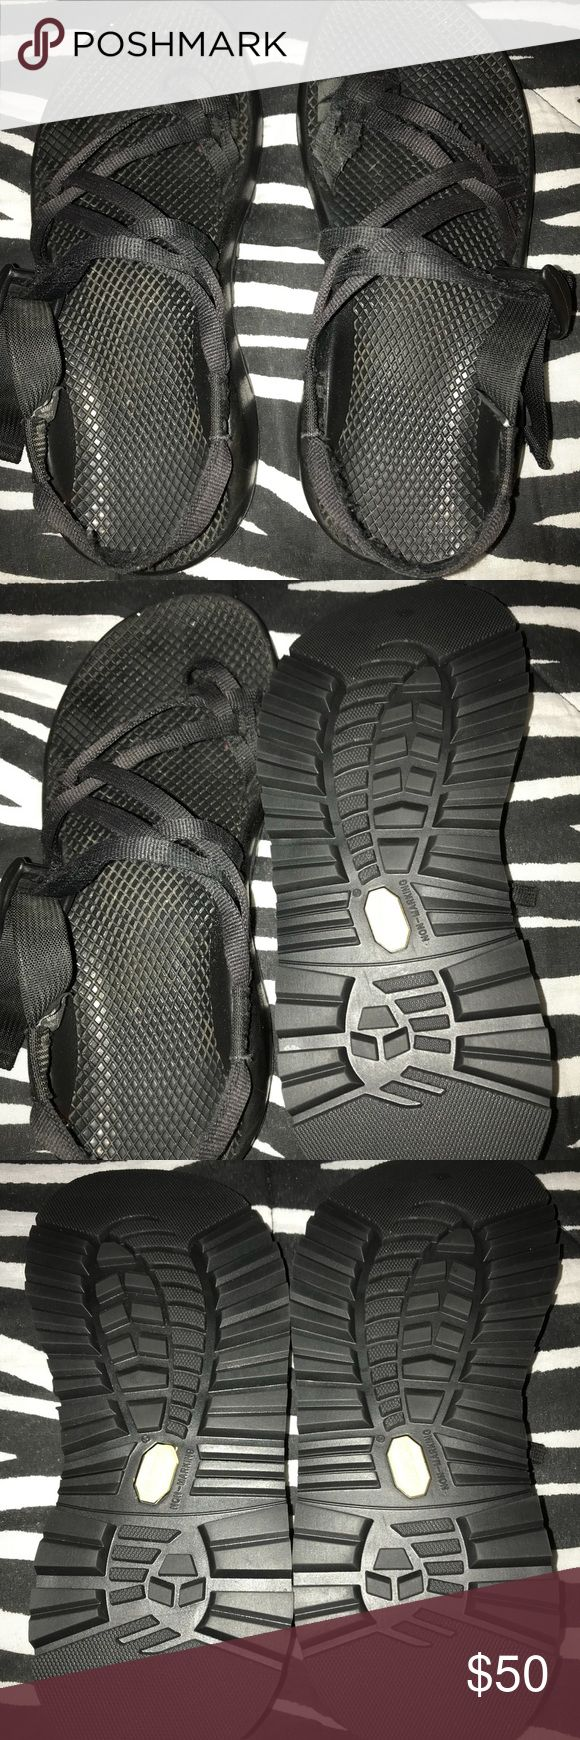 CHACOS- ladies, size 9 Black Z2 ladies Chacos, size 9- bought them online but they are too big. The toe straps are frayed but still have a lot of life in them. The bottoms are like new. Chaco Shoes Sandals